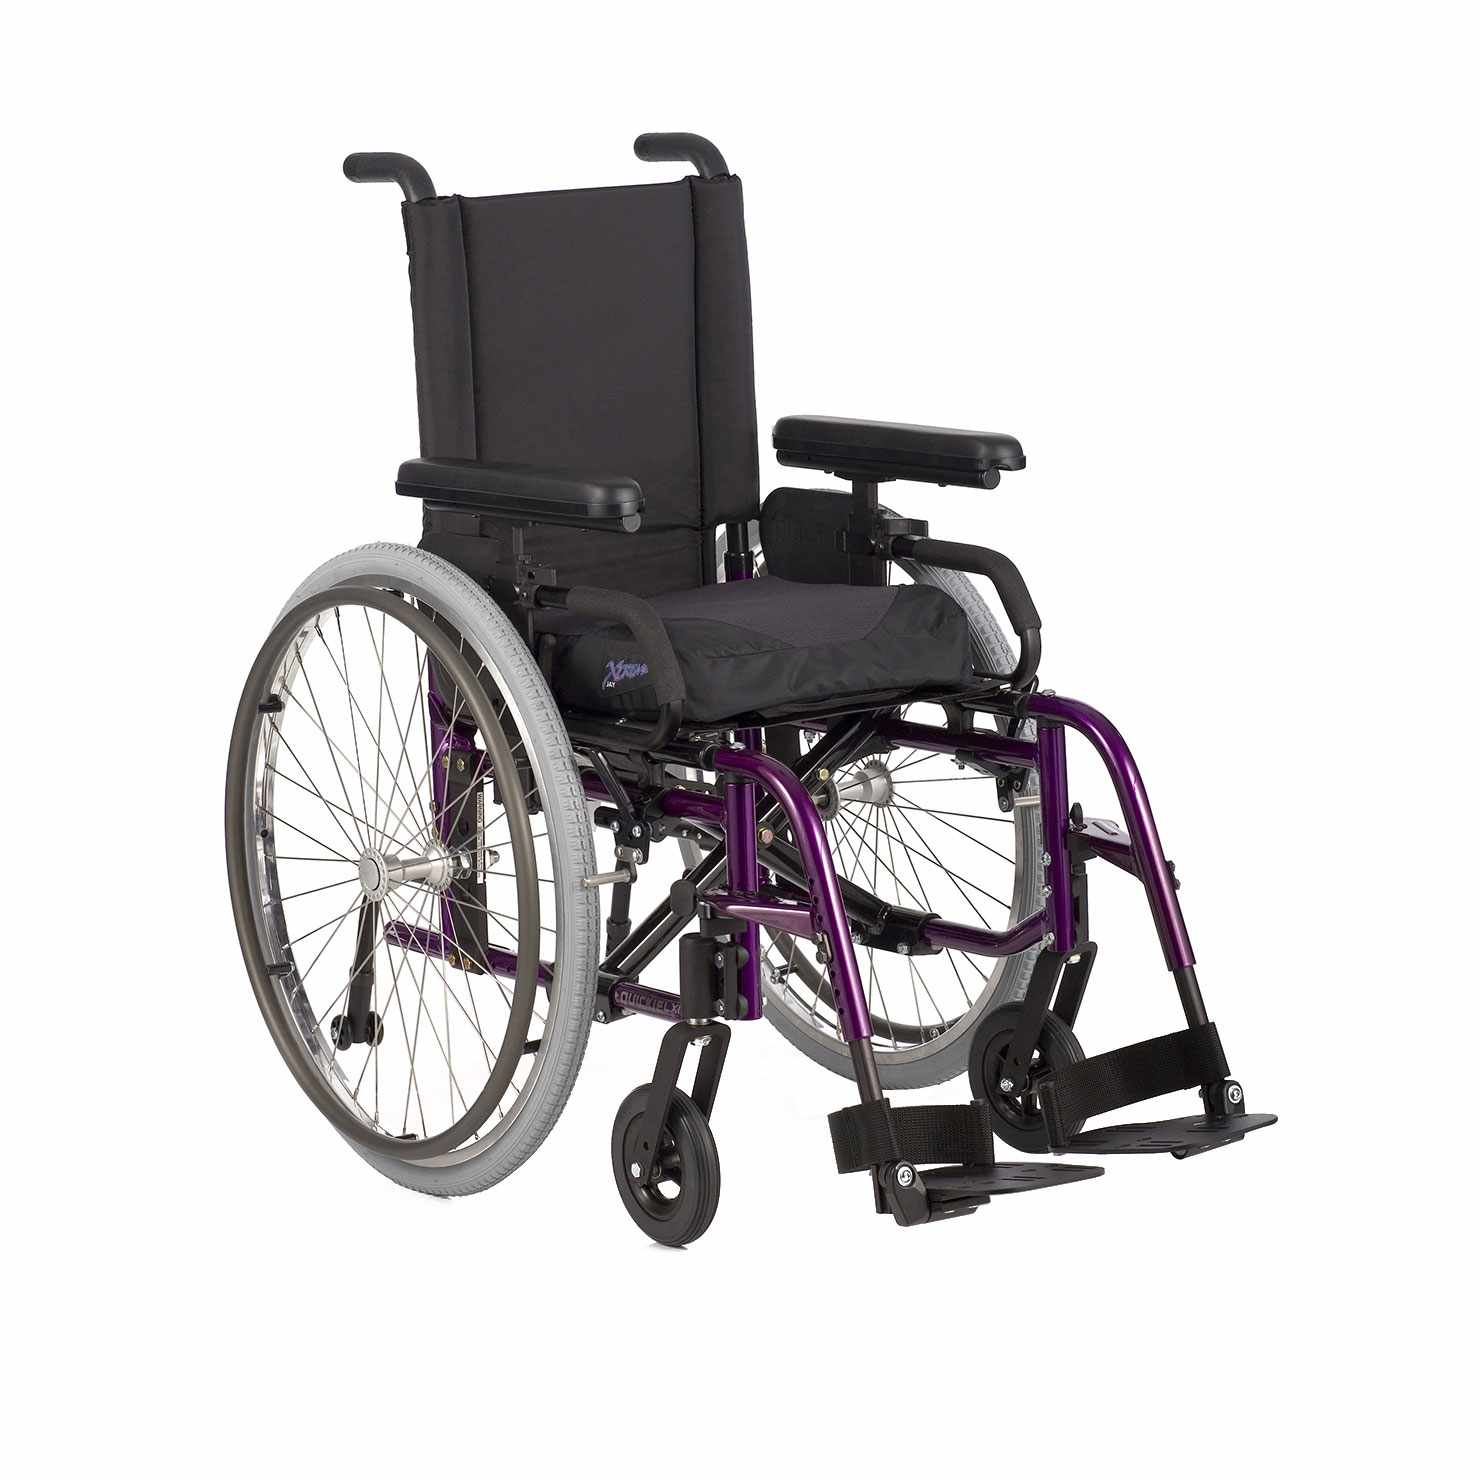 Quickie LX folding ultralight wheelchair